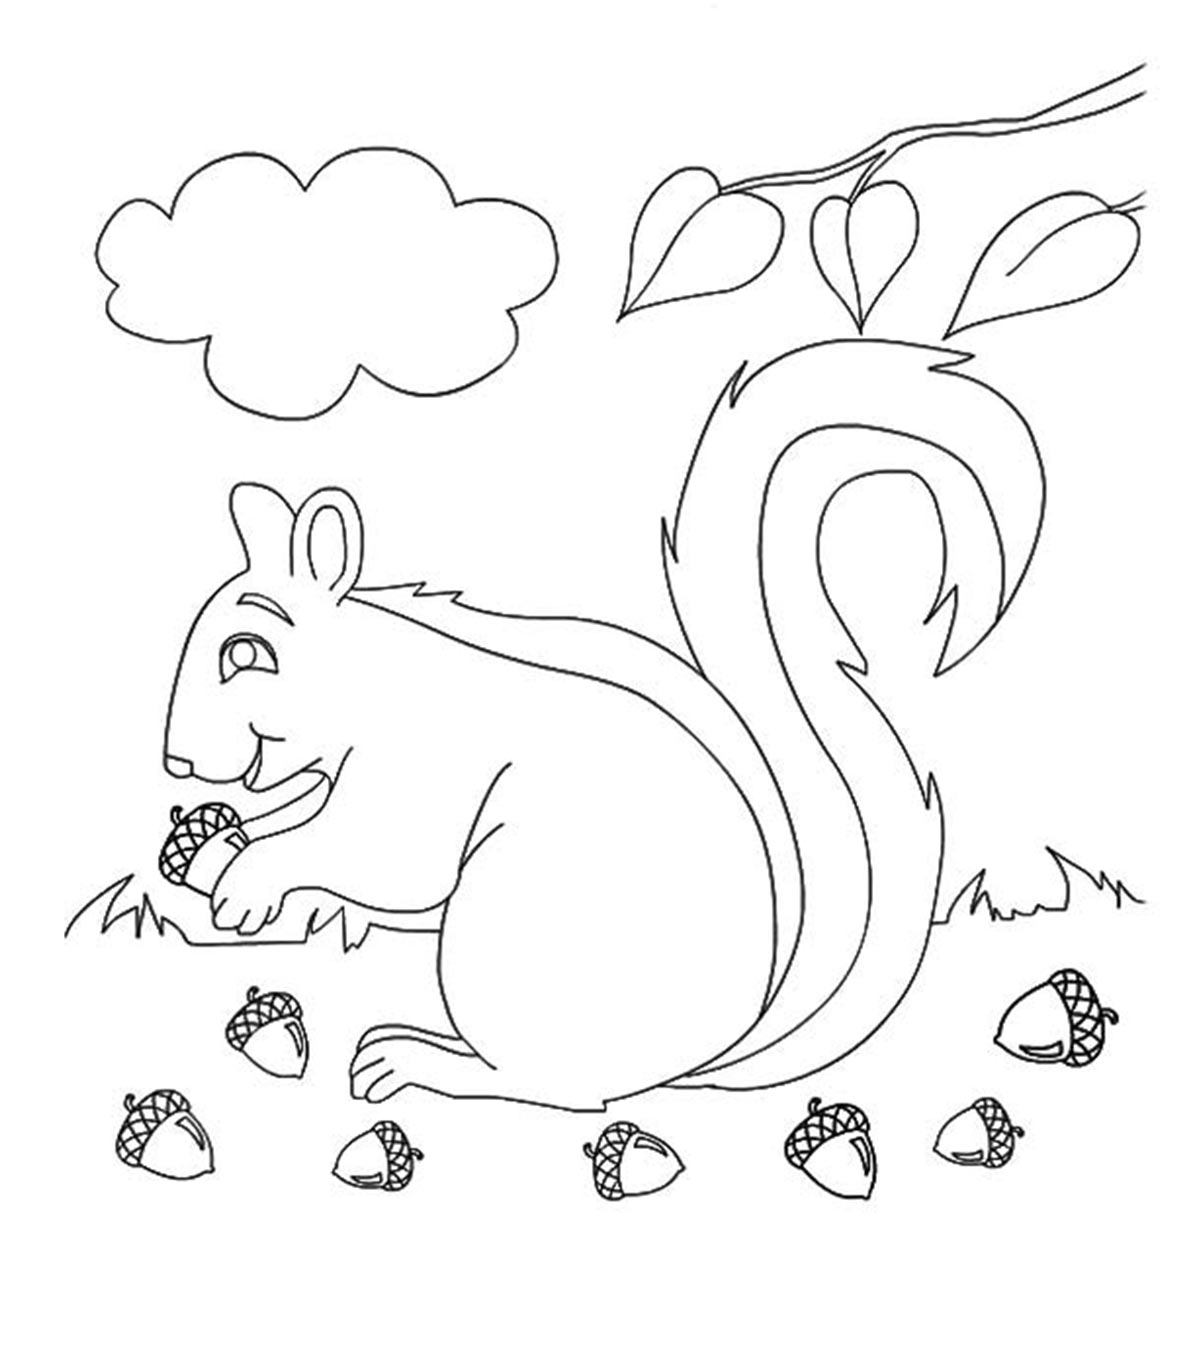 Coloring Pages For Weather Symbols